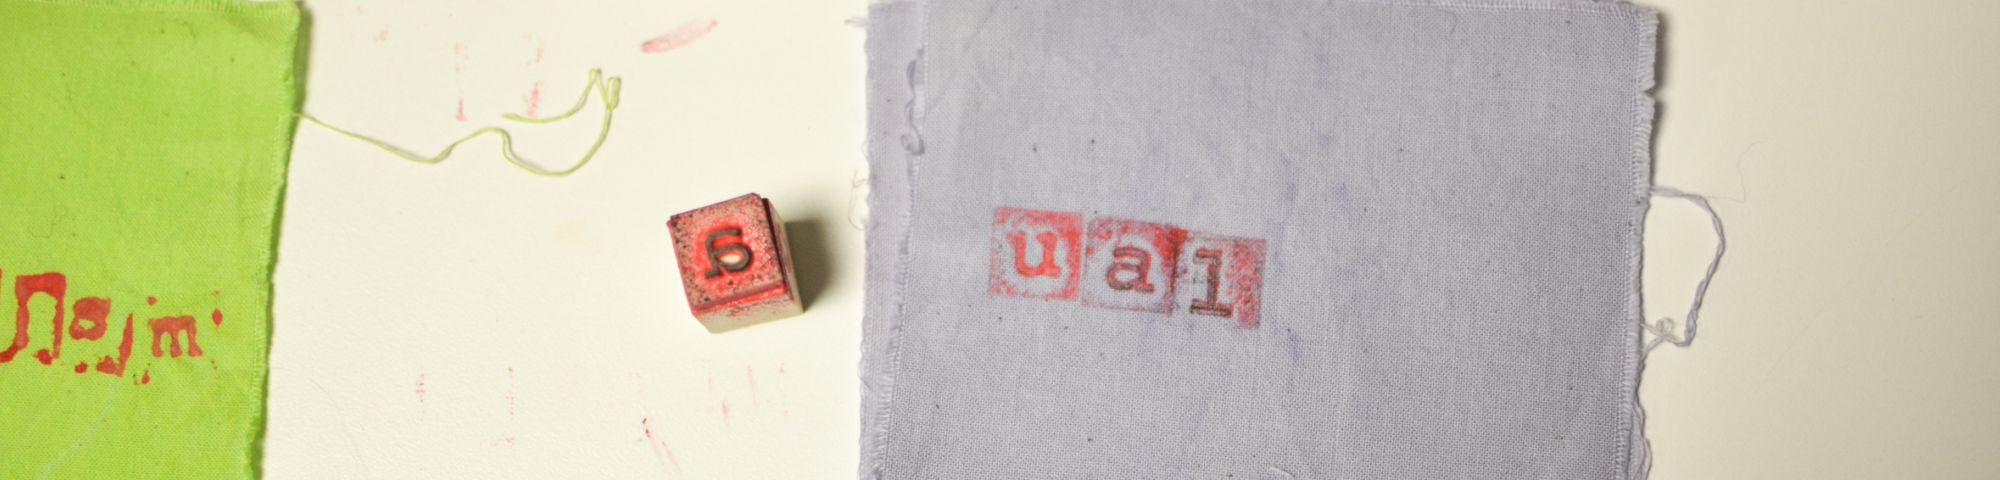 letter blocks and fabric bage with UAL spelled out